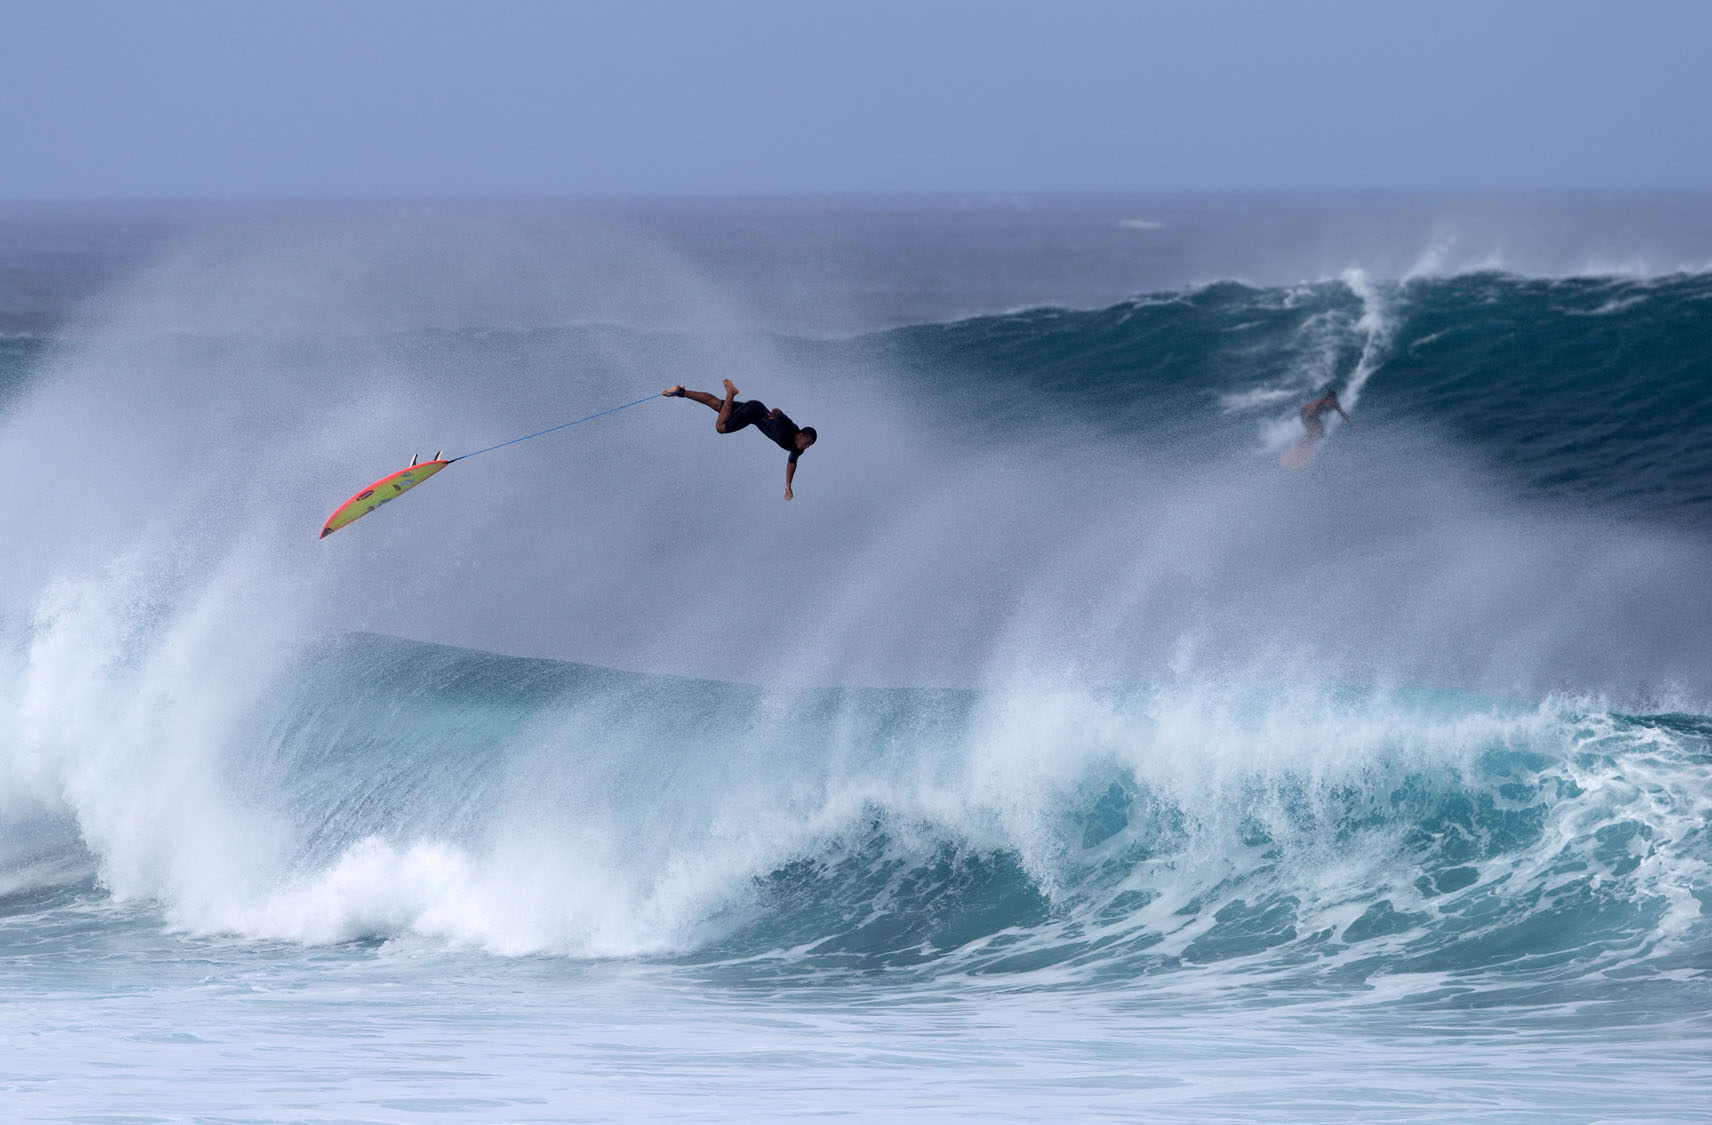 Surfers hit the waves in Hawaii on Christmas Day